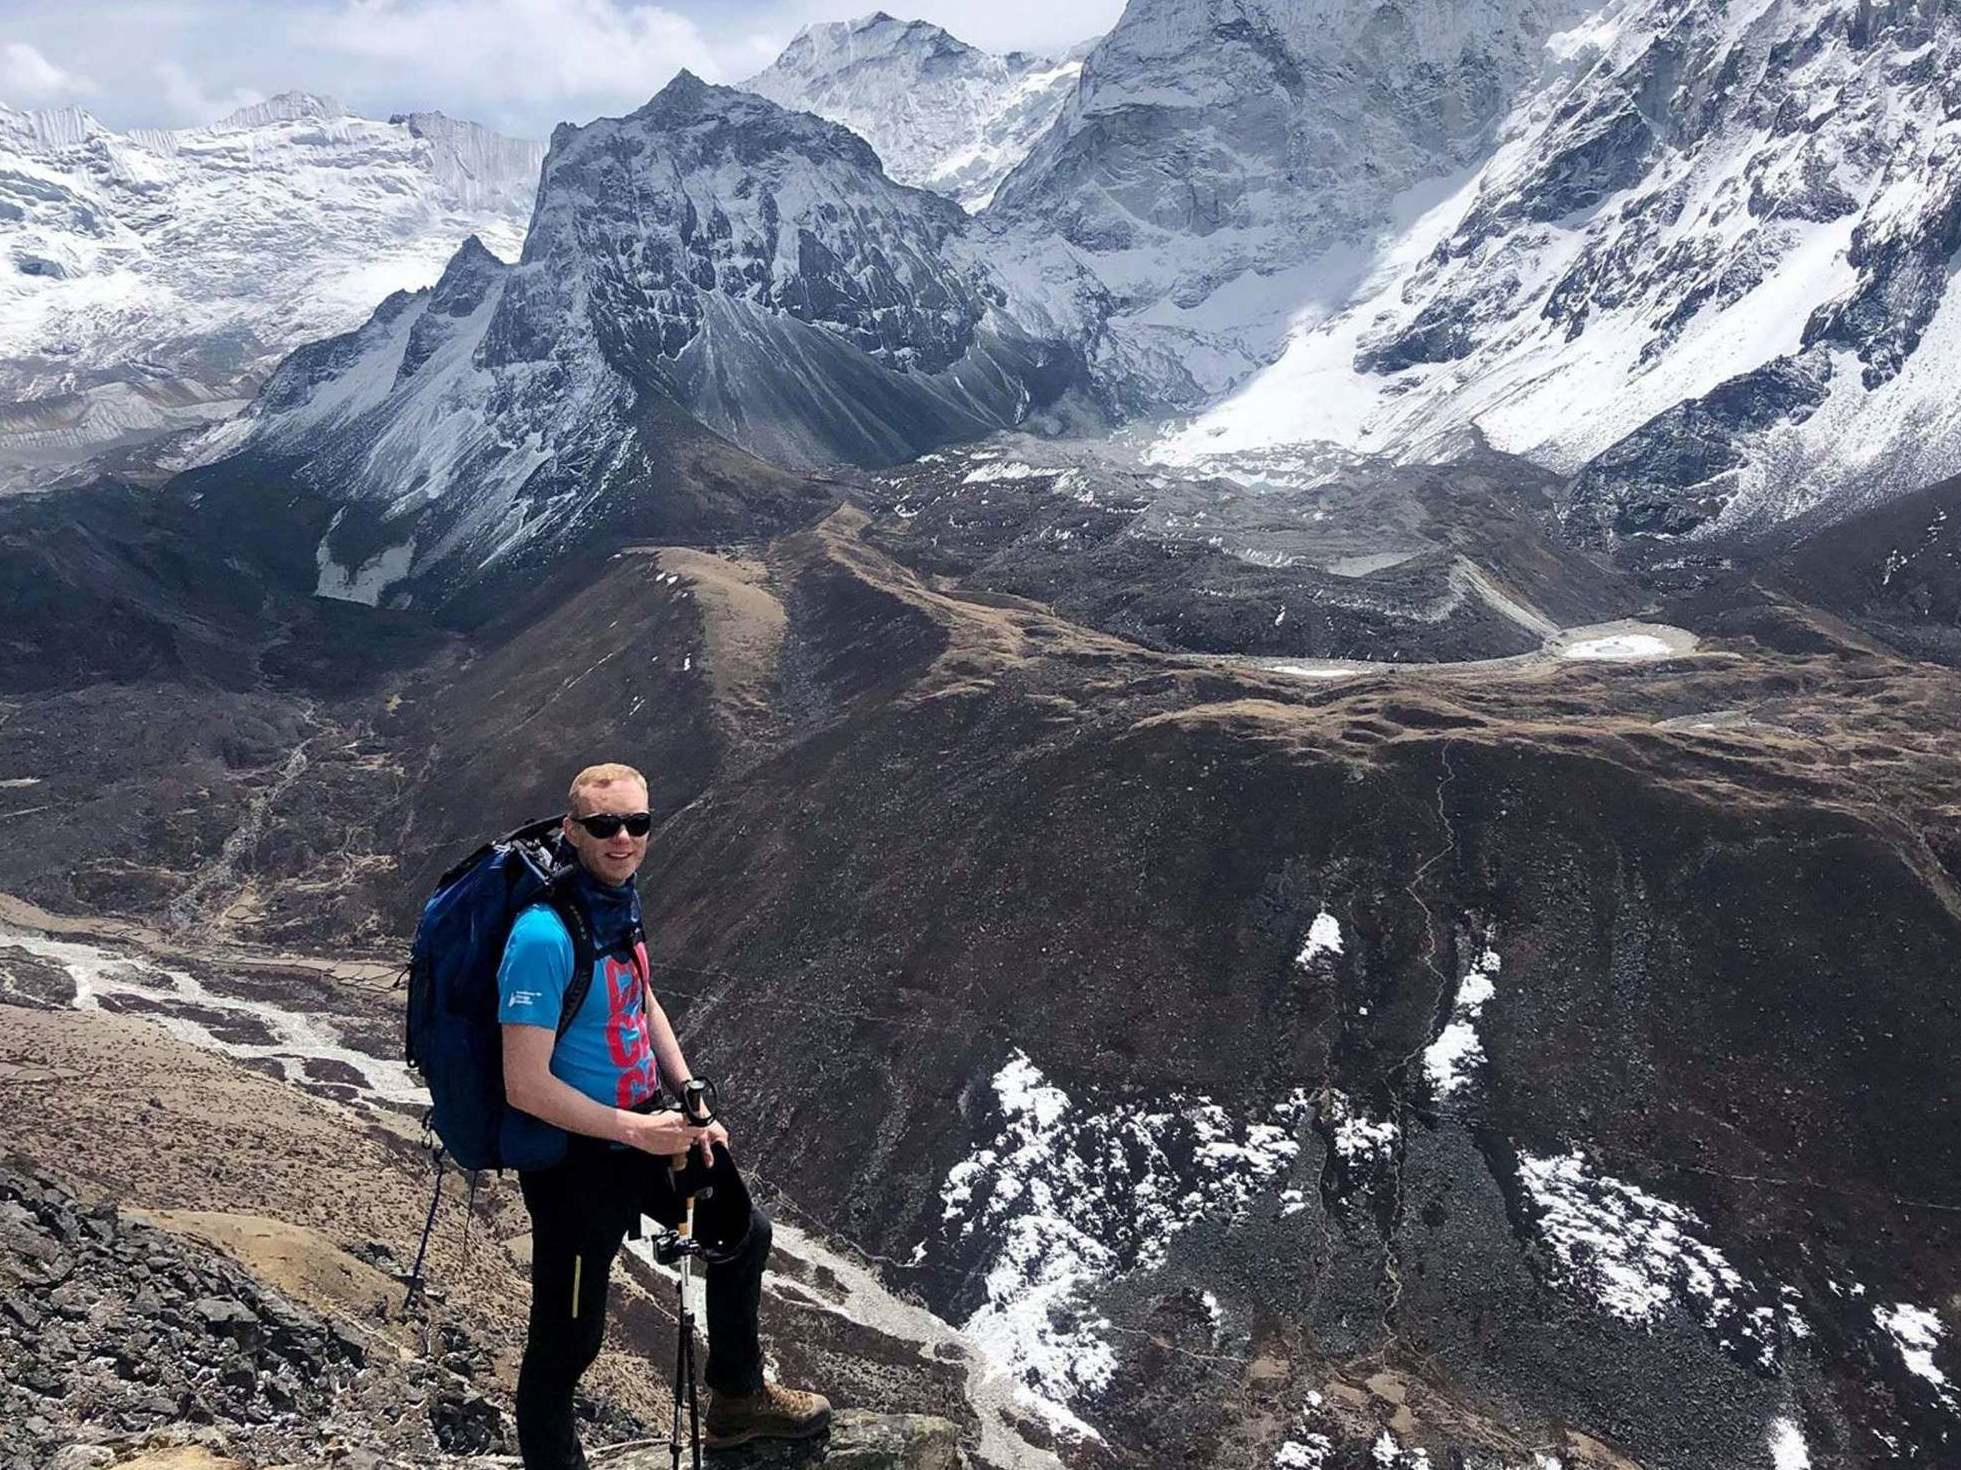 British man dies on Mount Everest as death toll of climbers in Nepal's Himalayas reaches 18